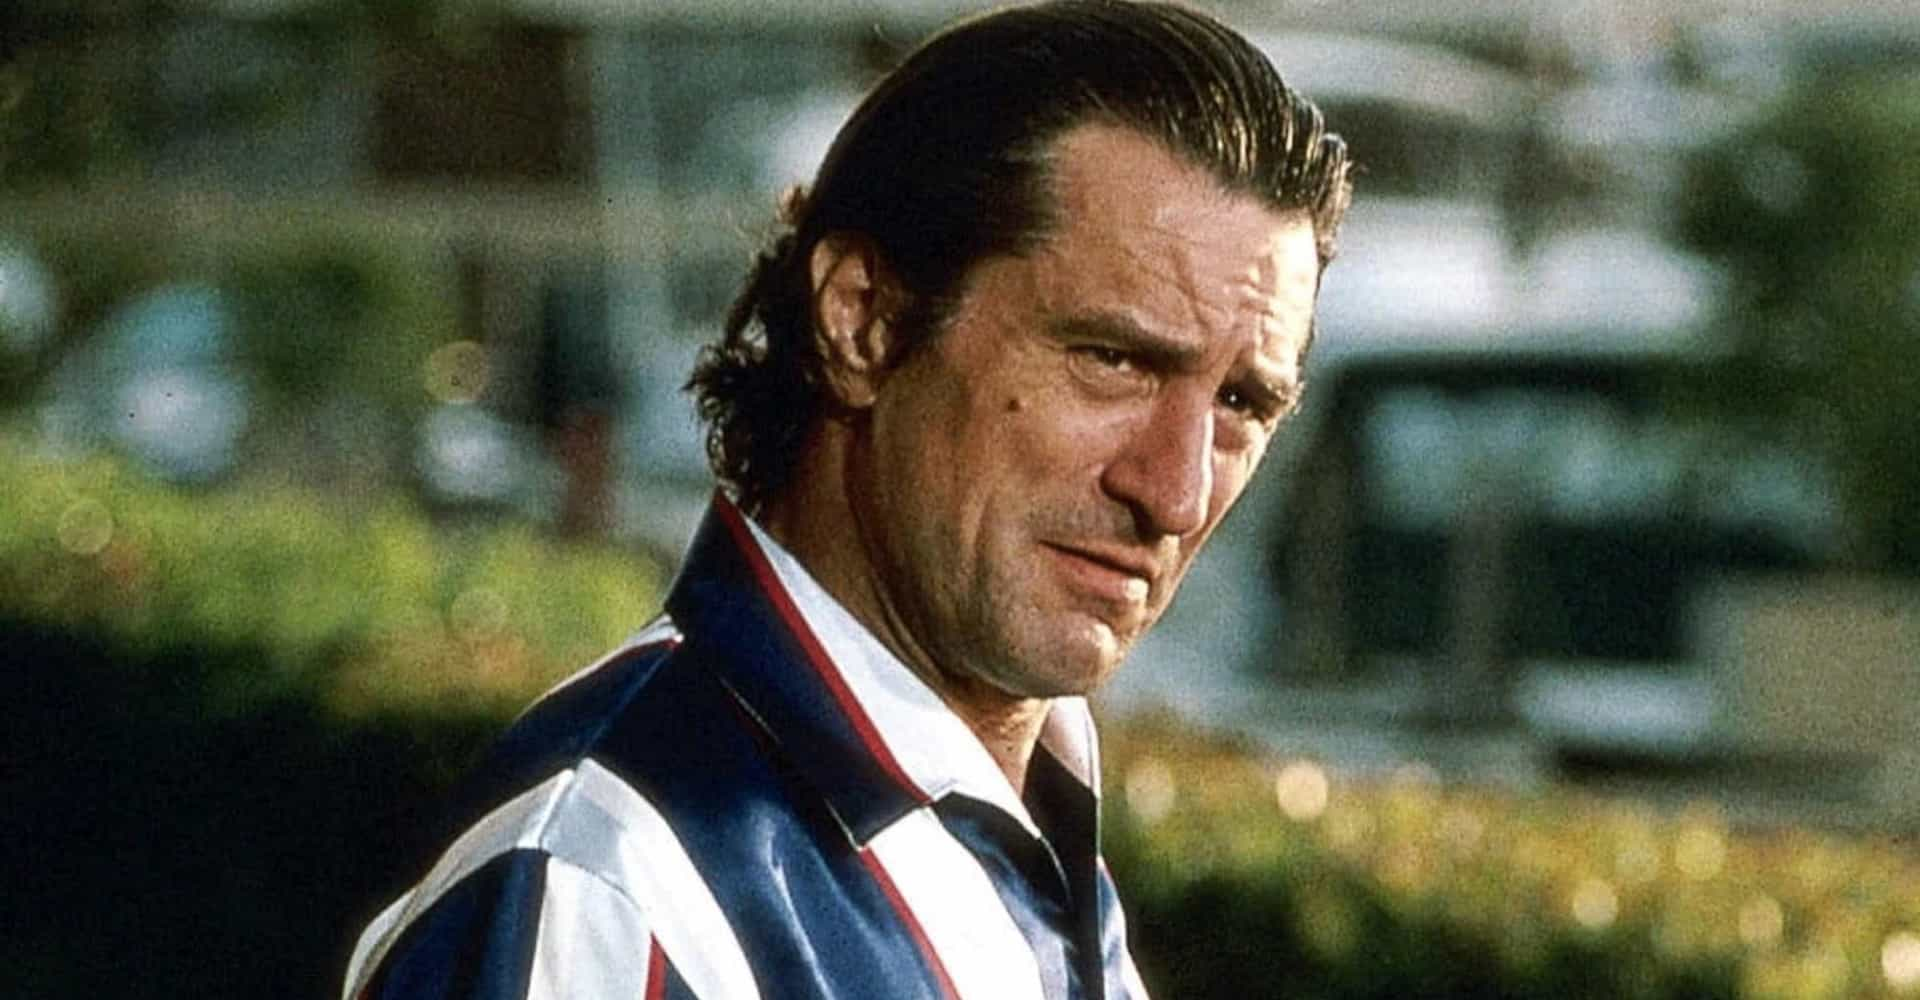 The secrets behind Robert De Niro's best performances